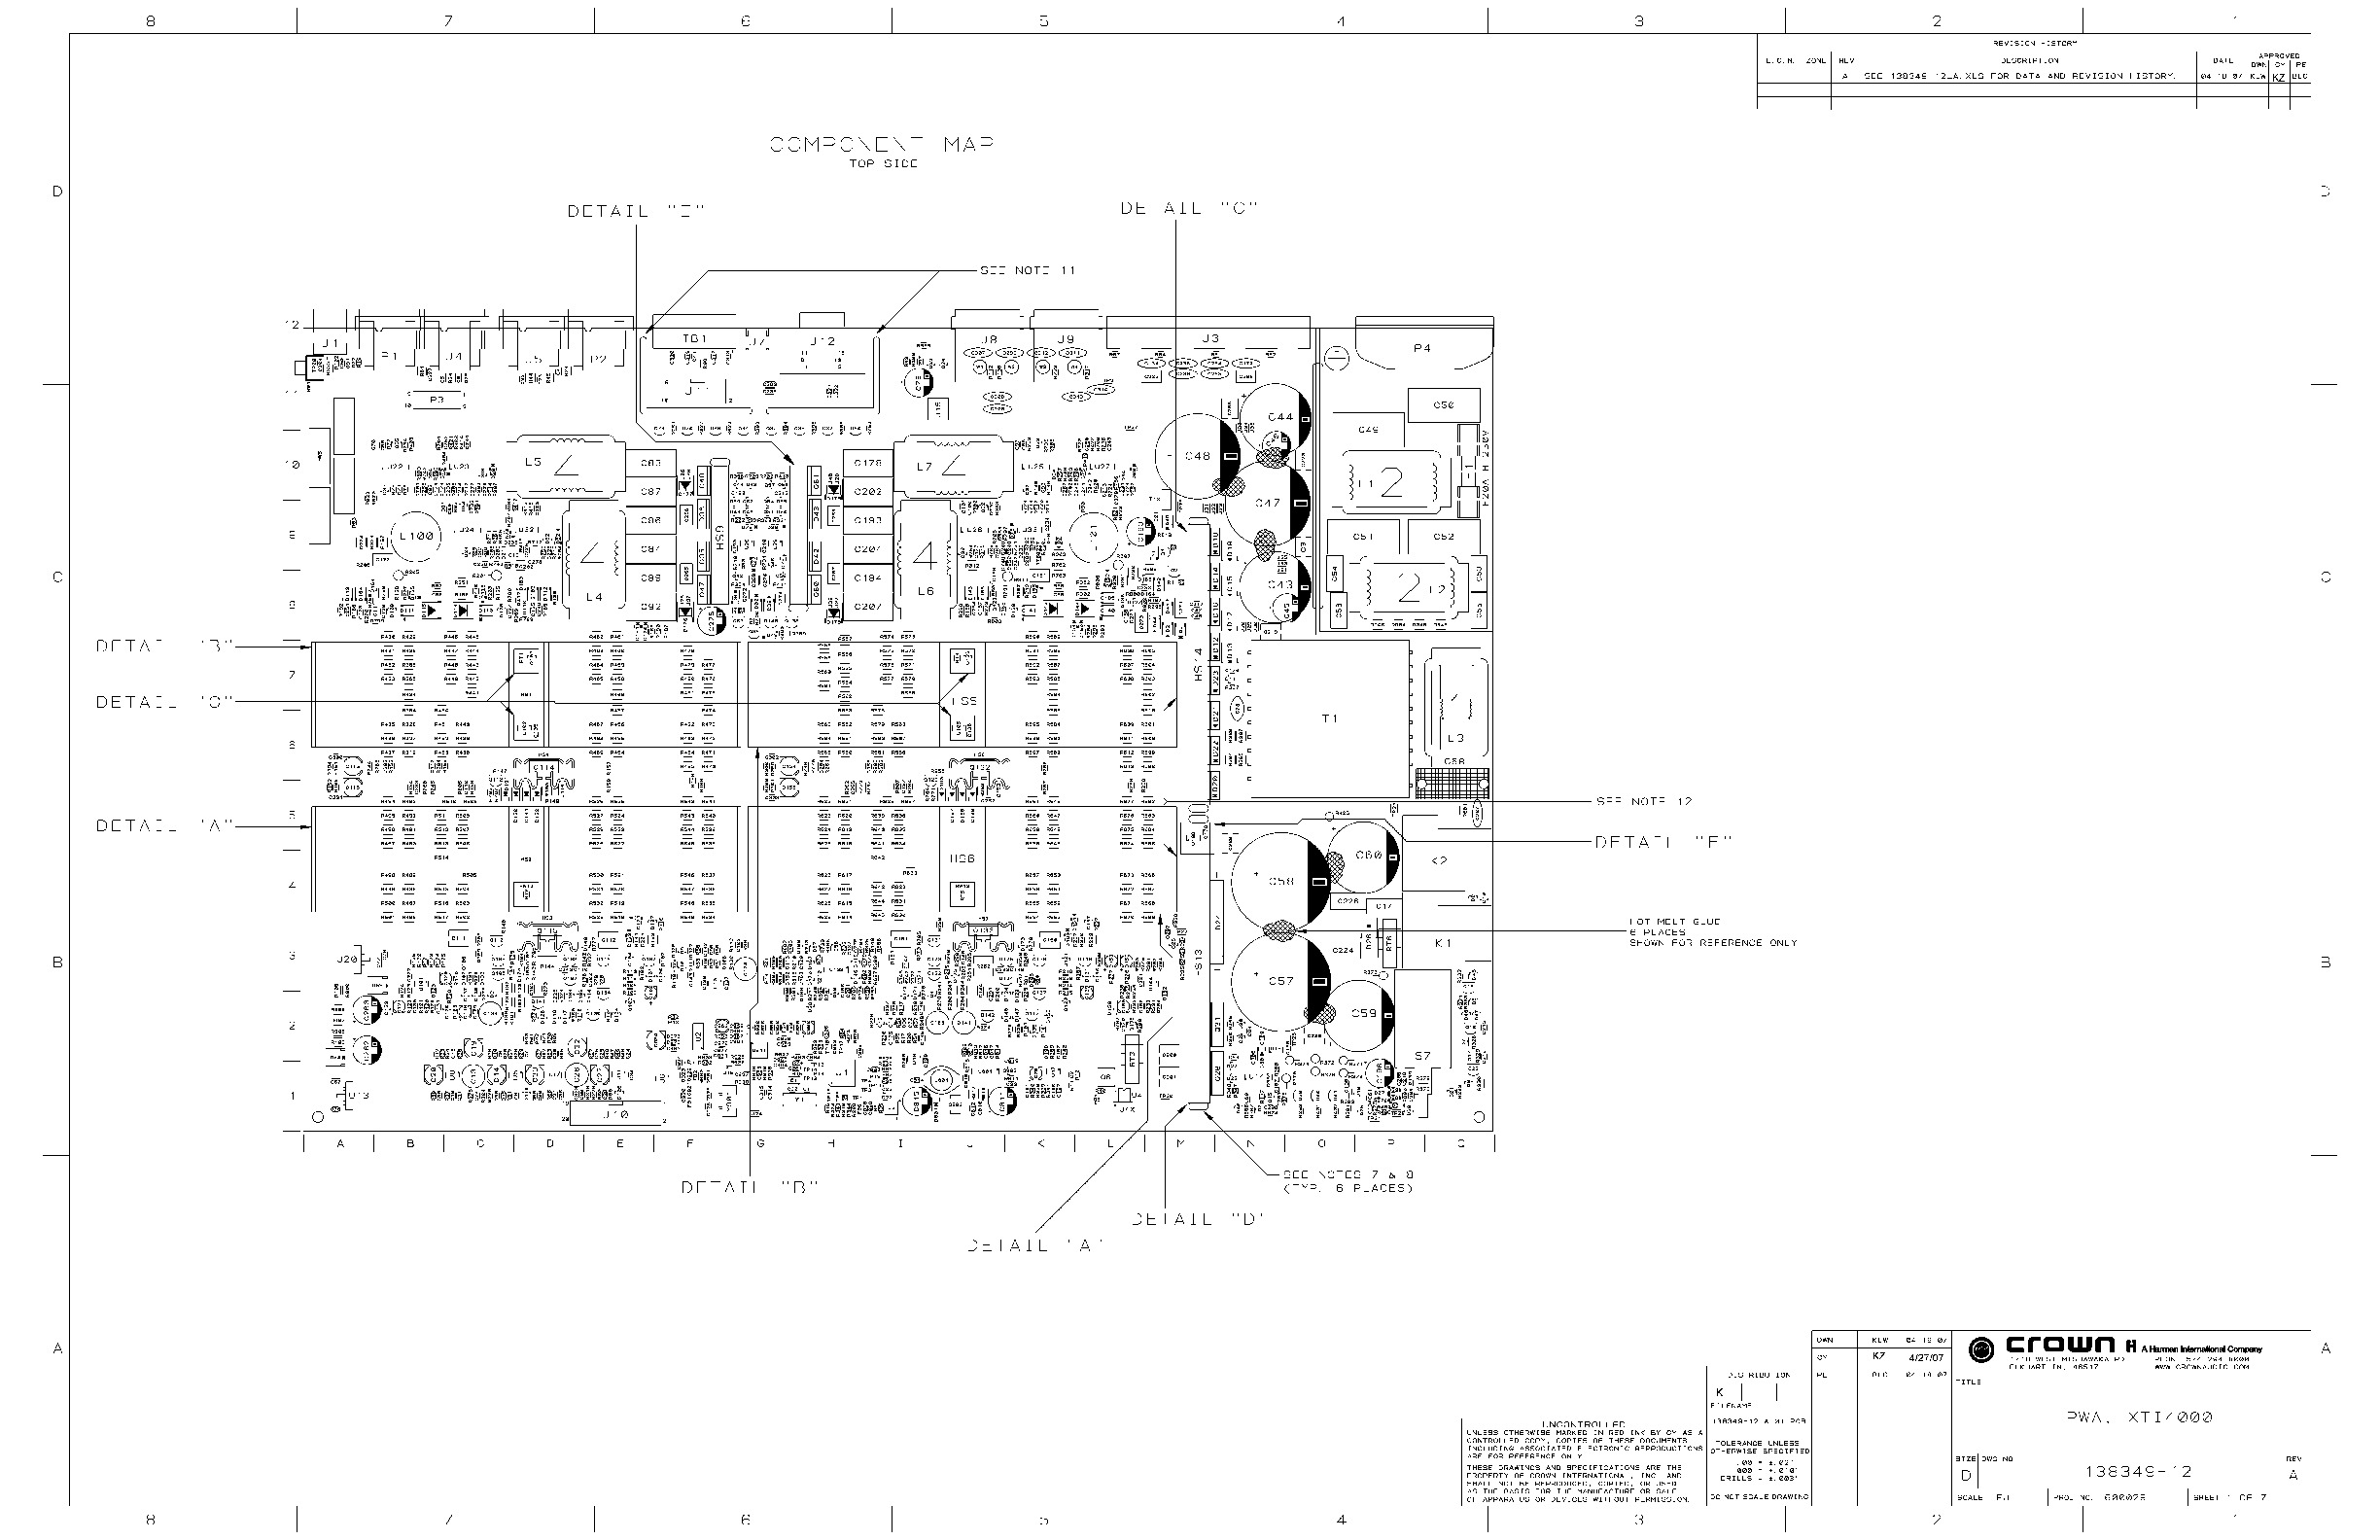 CROWN XTI 4000 Crown XTI 4000 schematic pdf Diagramas de